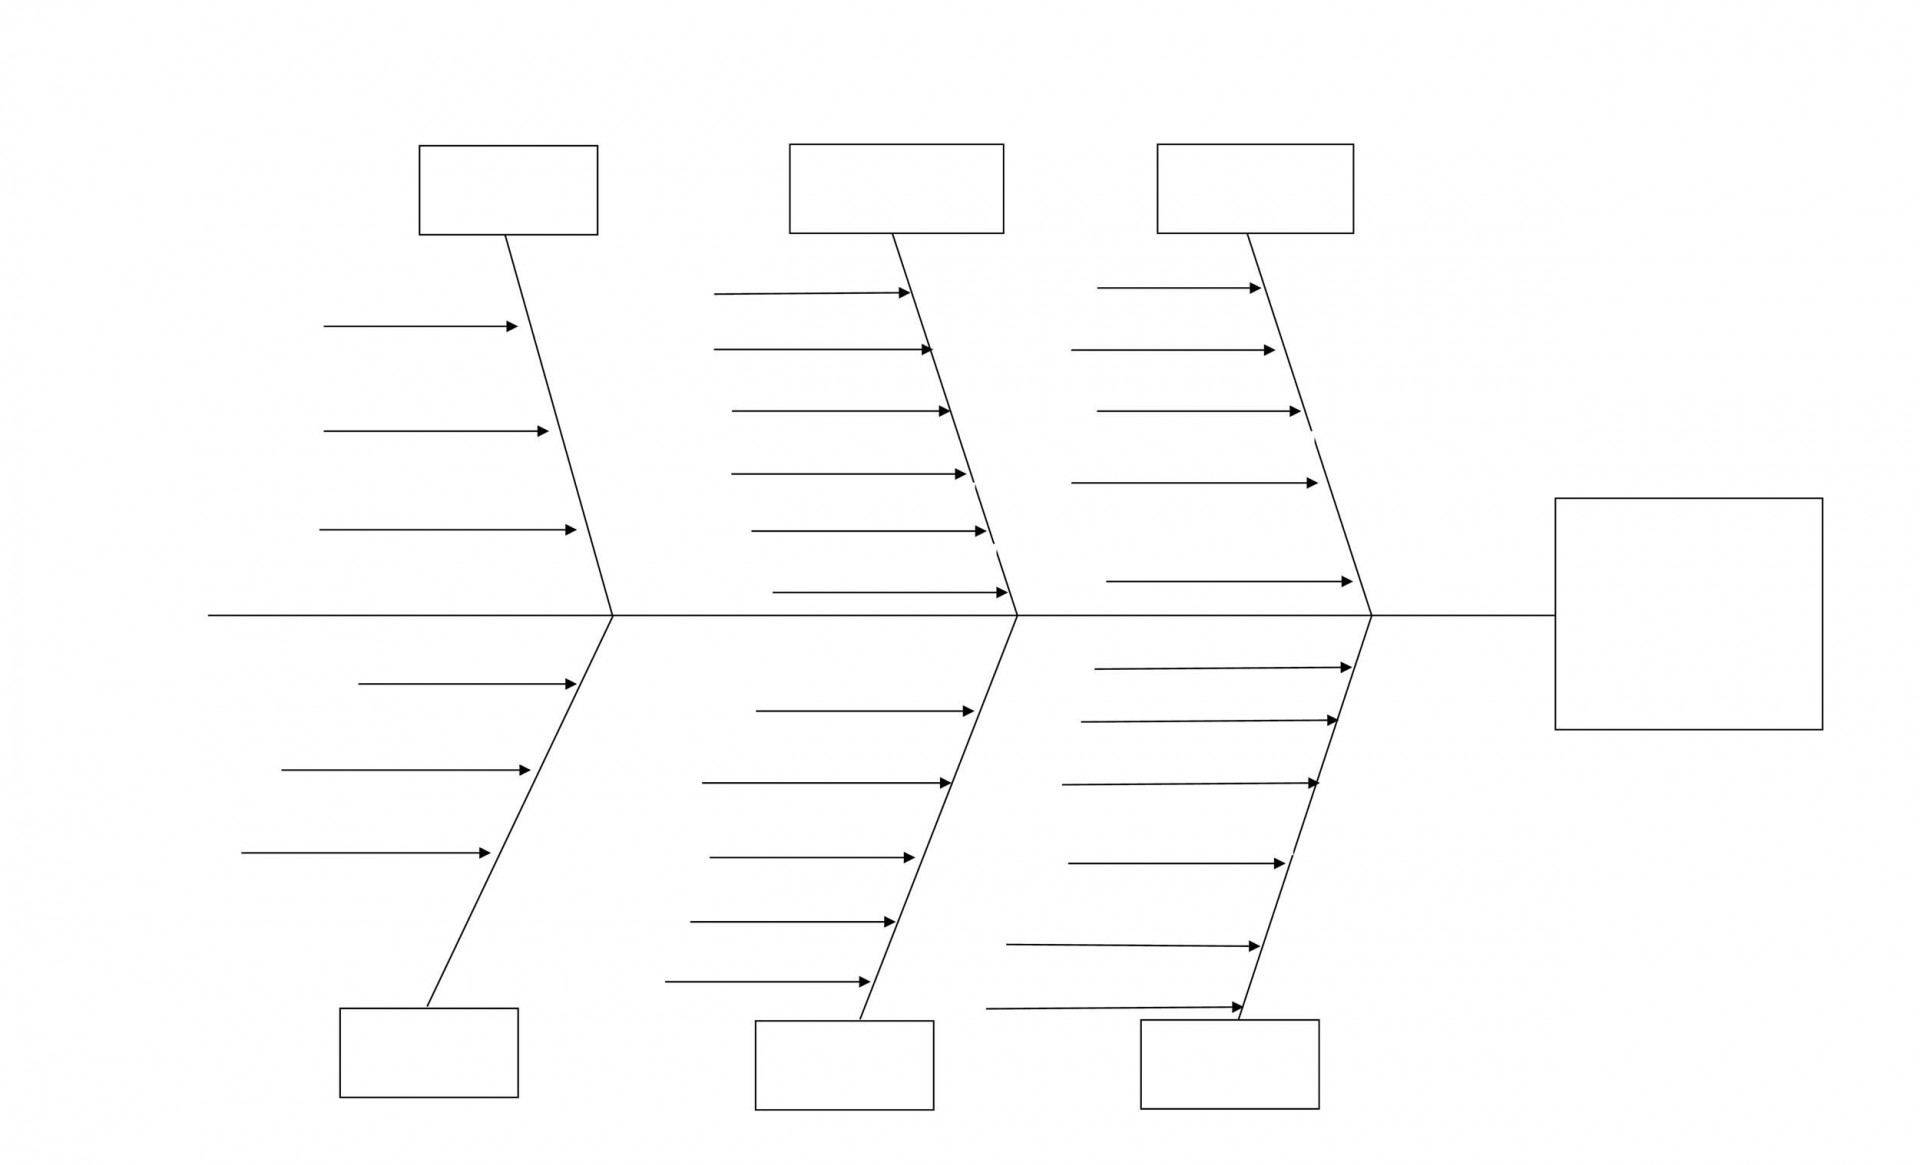 003 Unique Blank Fishbone Diagram Template Highest Quality  Downloadable Word Pdf1920